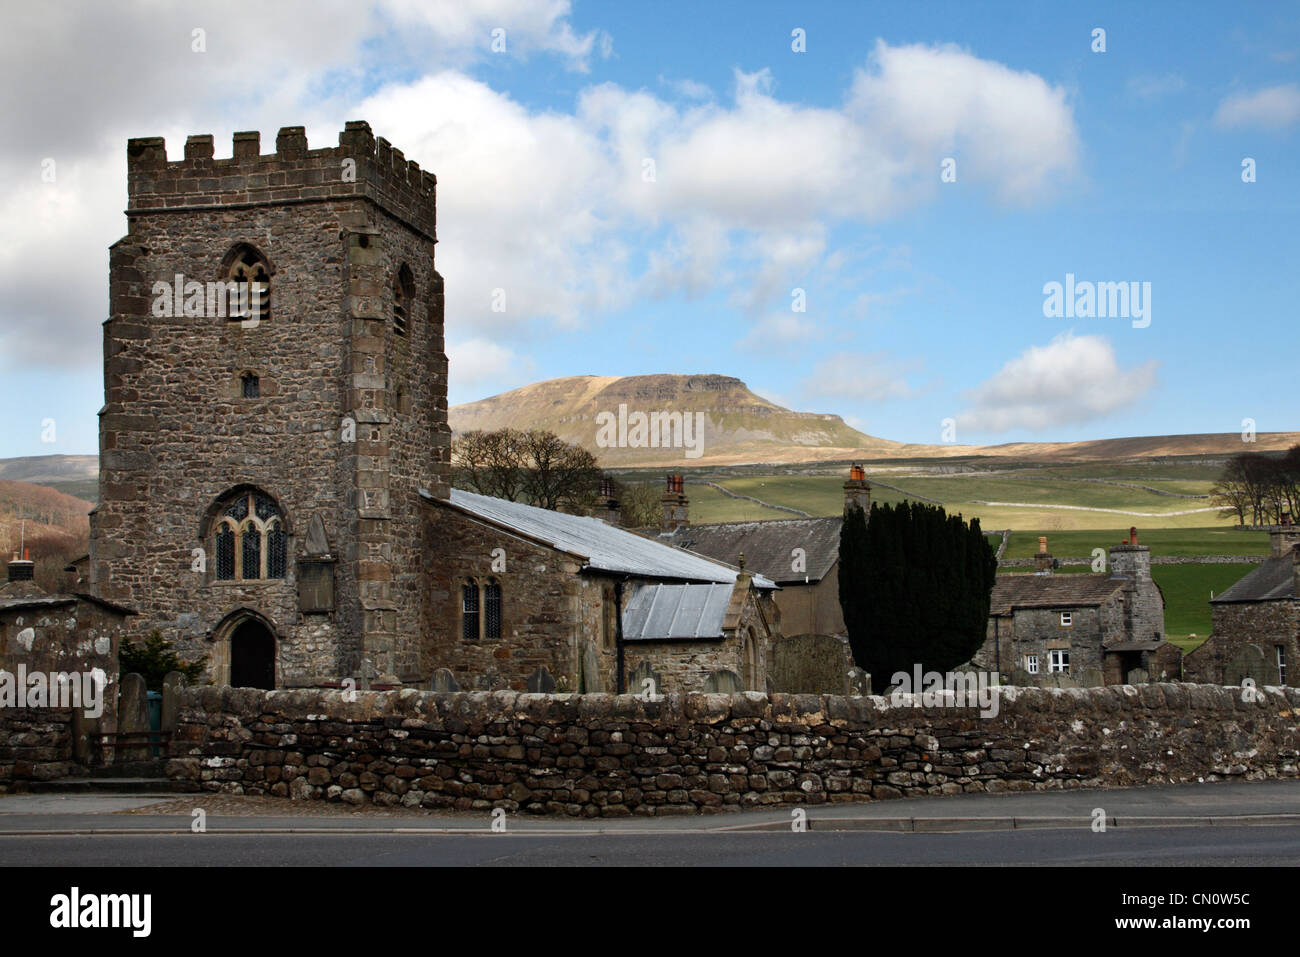 Horton in Ribblesdale village with one of the 'three peaks' Pen-y-Ghent in the background - Stock Image